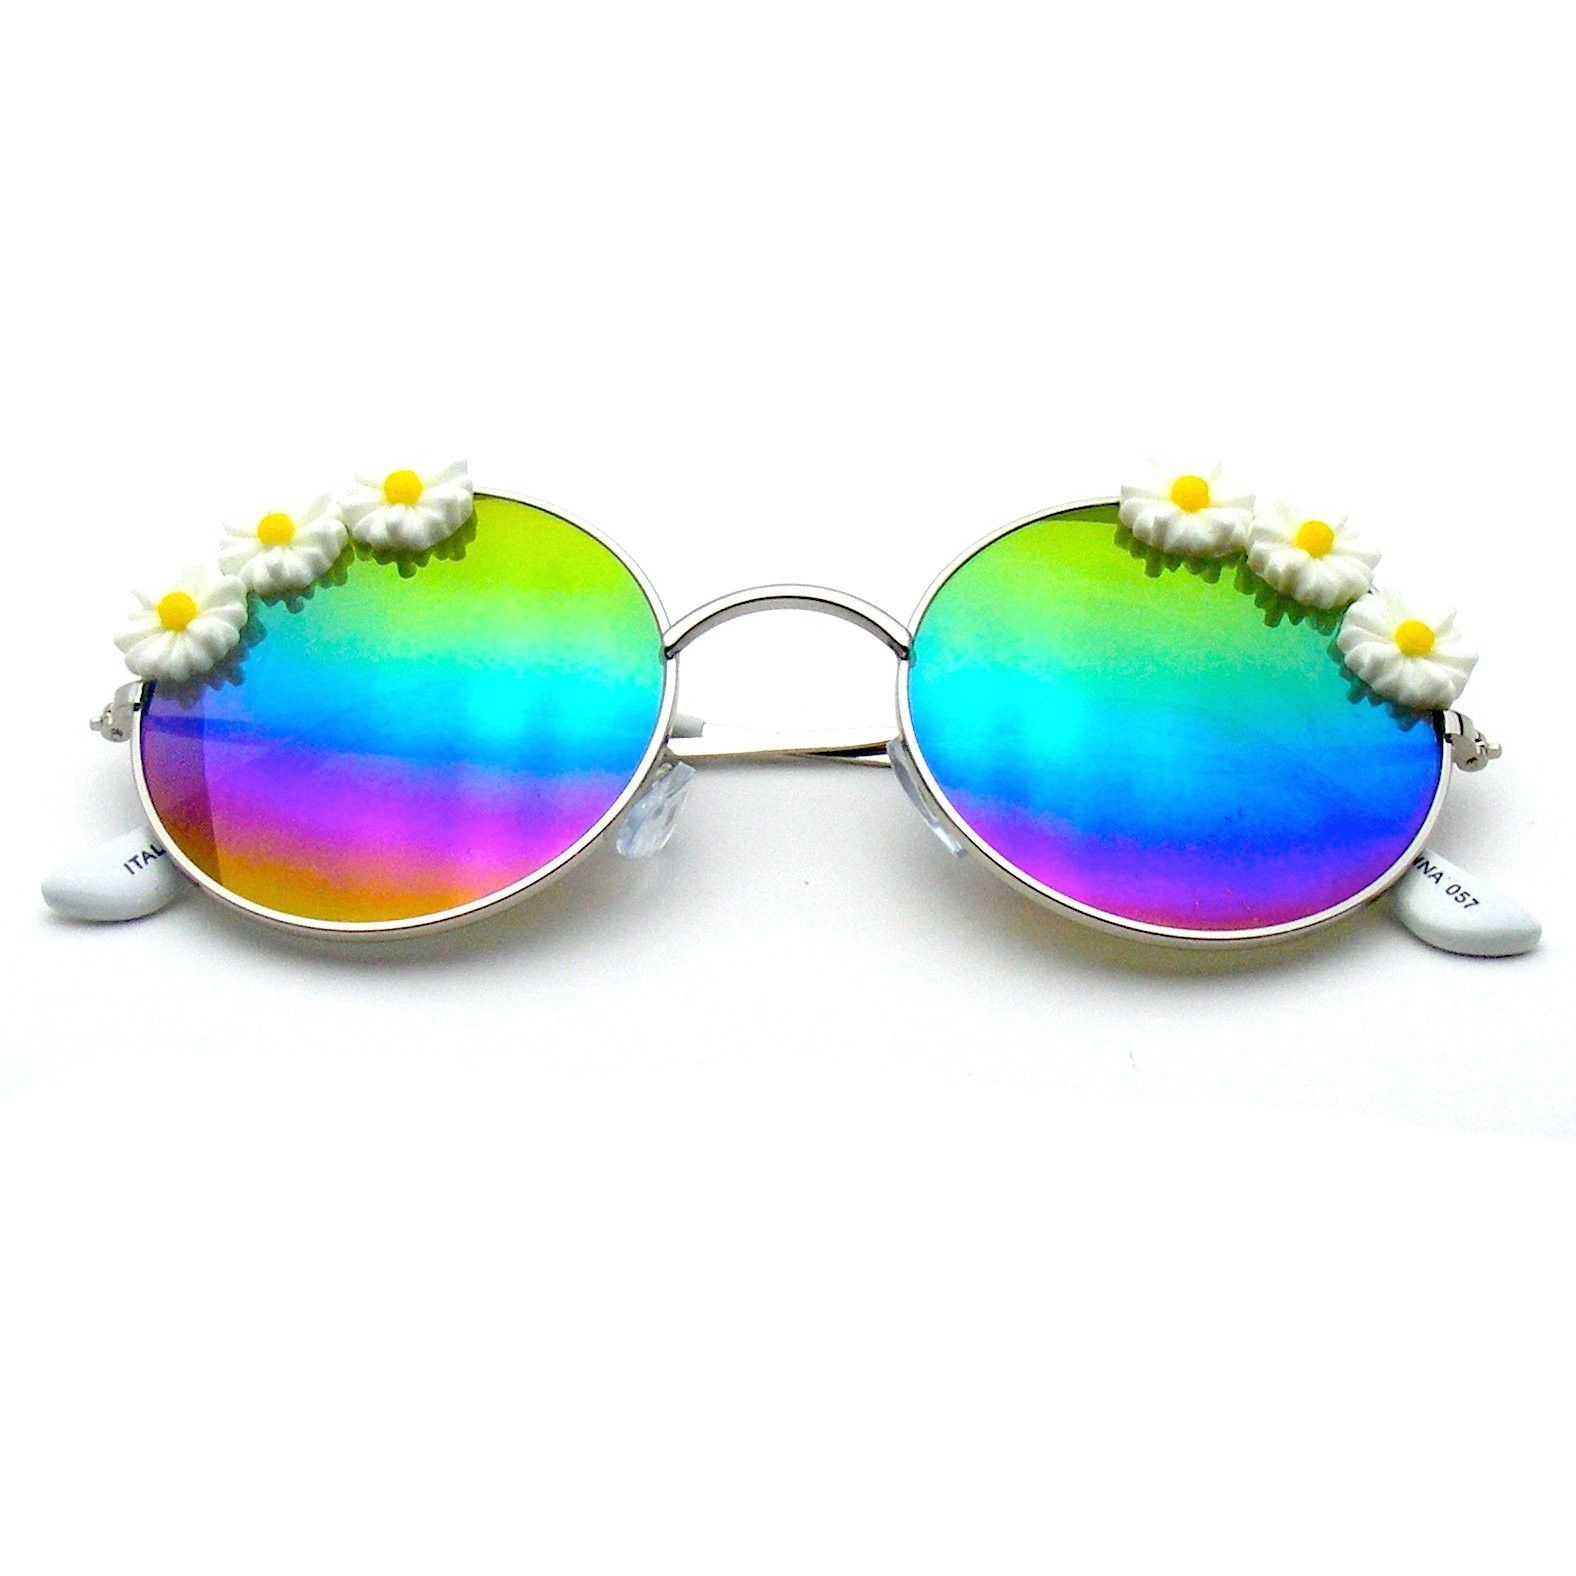 c25abf8b06a Flash Floral Retro John Lennon Inspired Sunglasses Round Hippie Shades  Colored Lenses